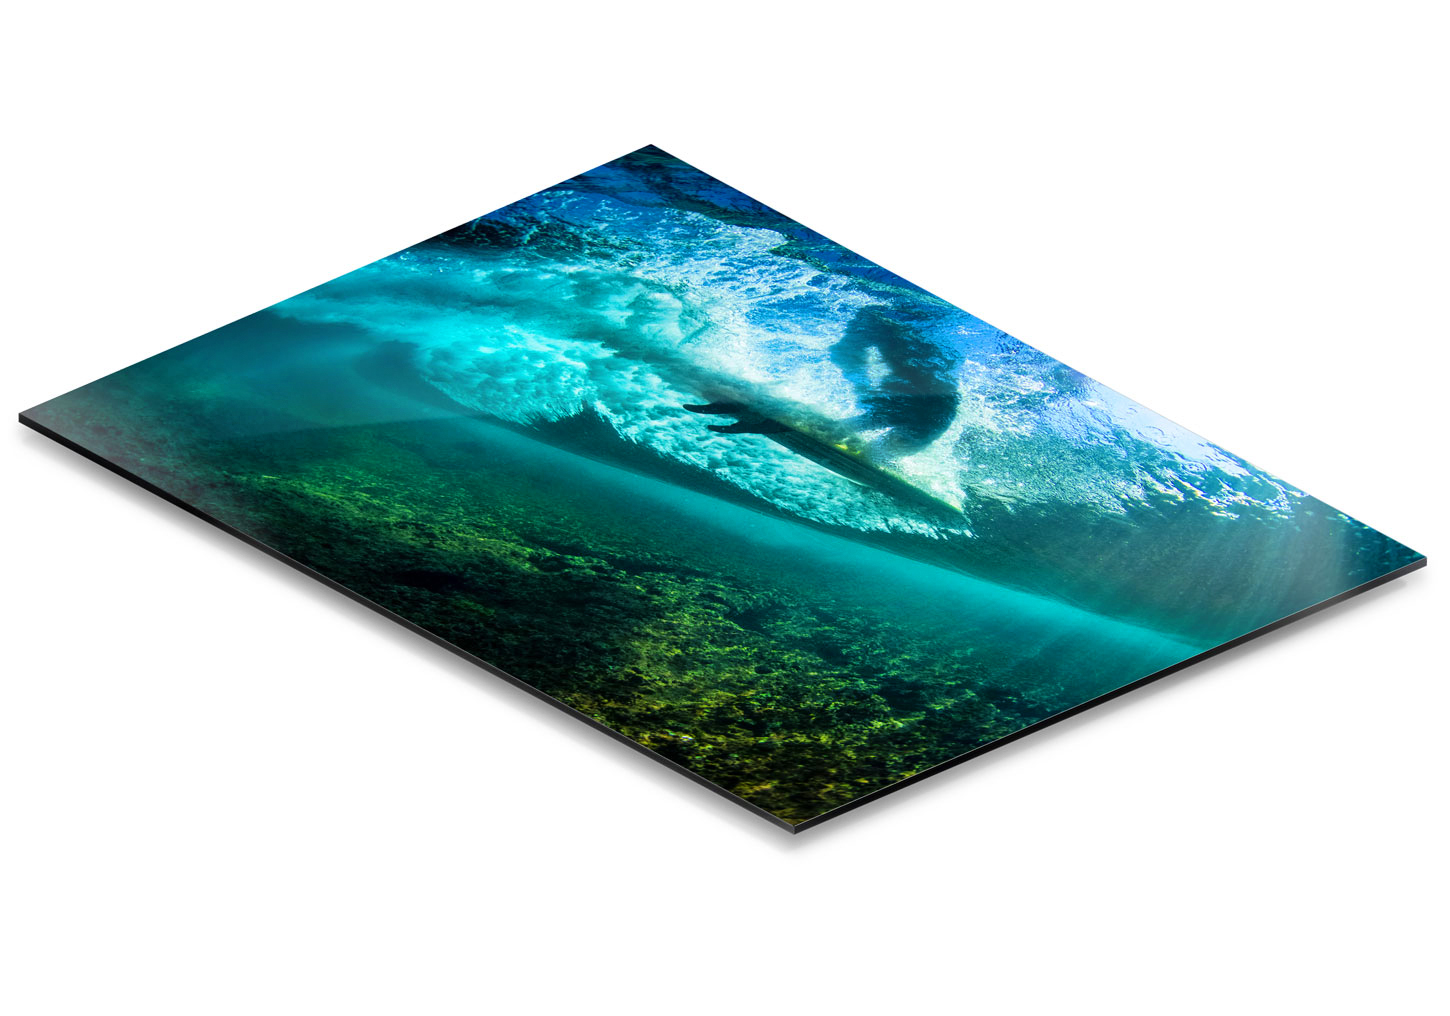 Epic Prints are high resolution photographic prints mounted on an aluminum substrate and finished with a thick laminate.